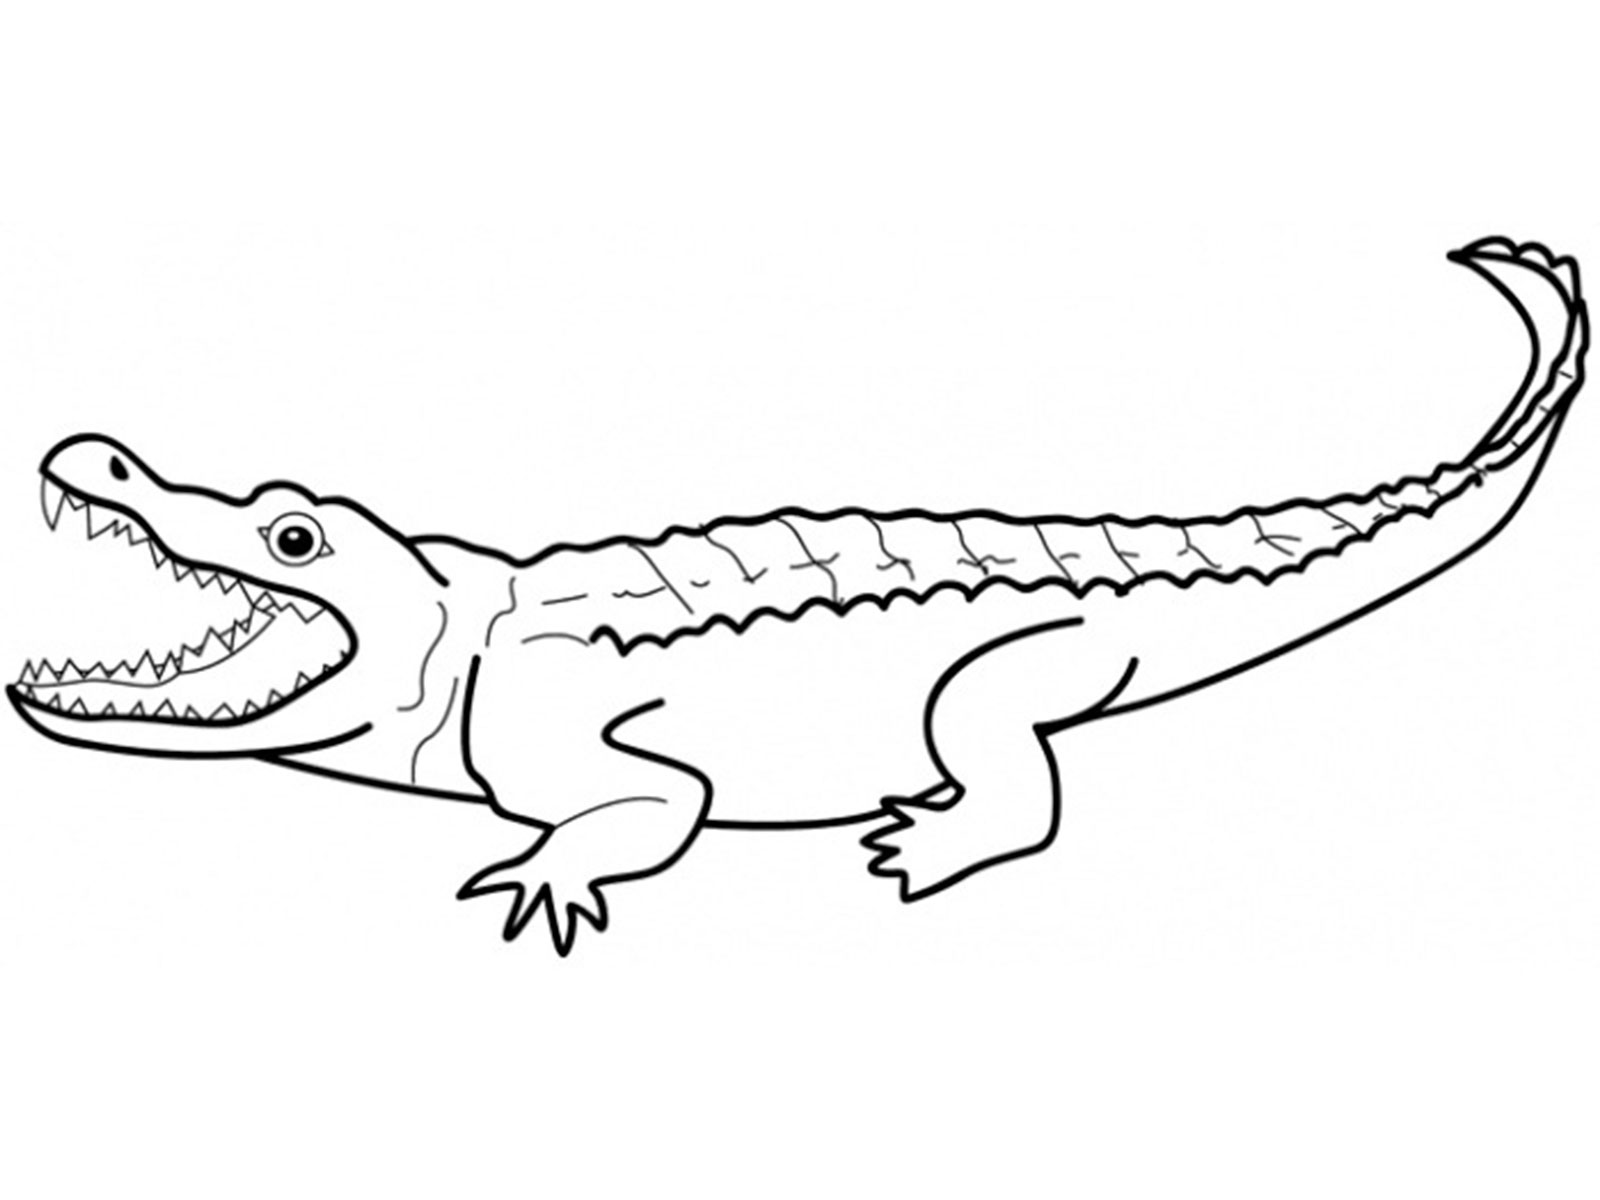 coloring pages for reptiles alligators - photo#19